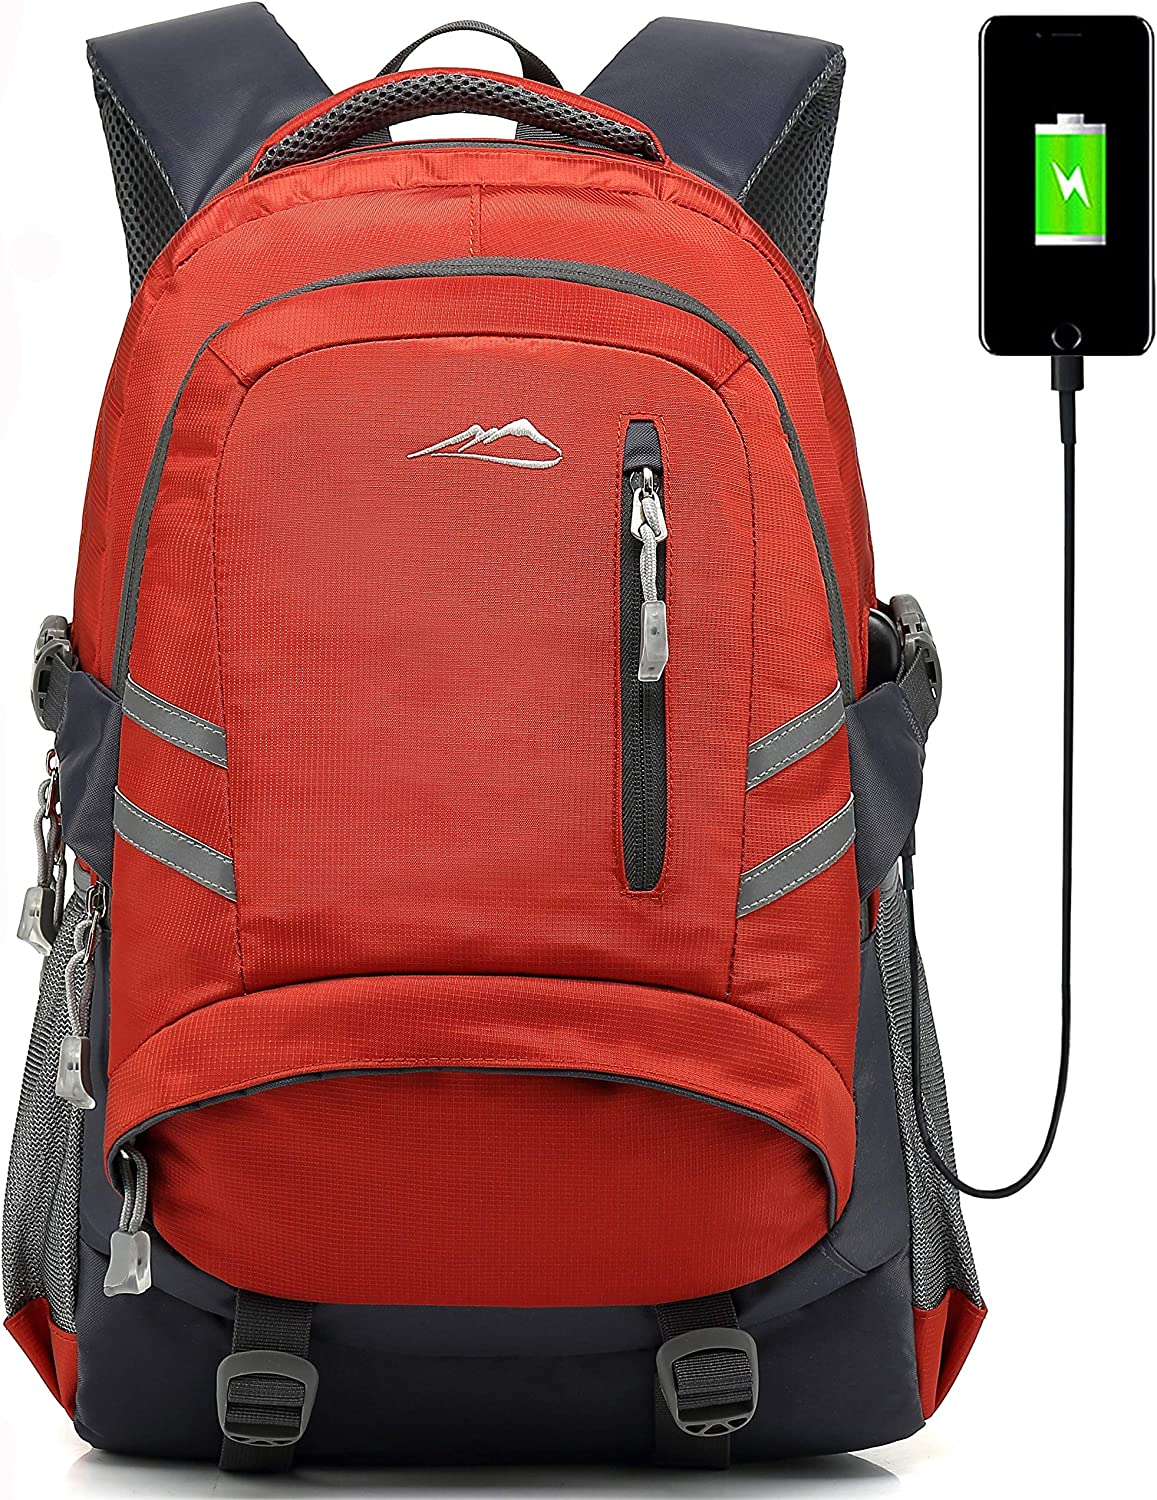 ProEtrade Backpack Bookbag for School College Student Travel Business with USB Charging Port